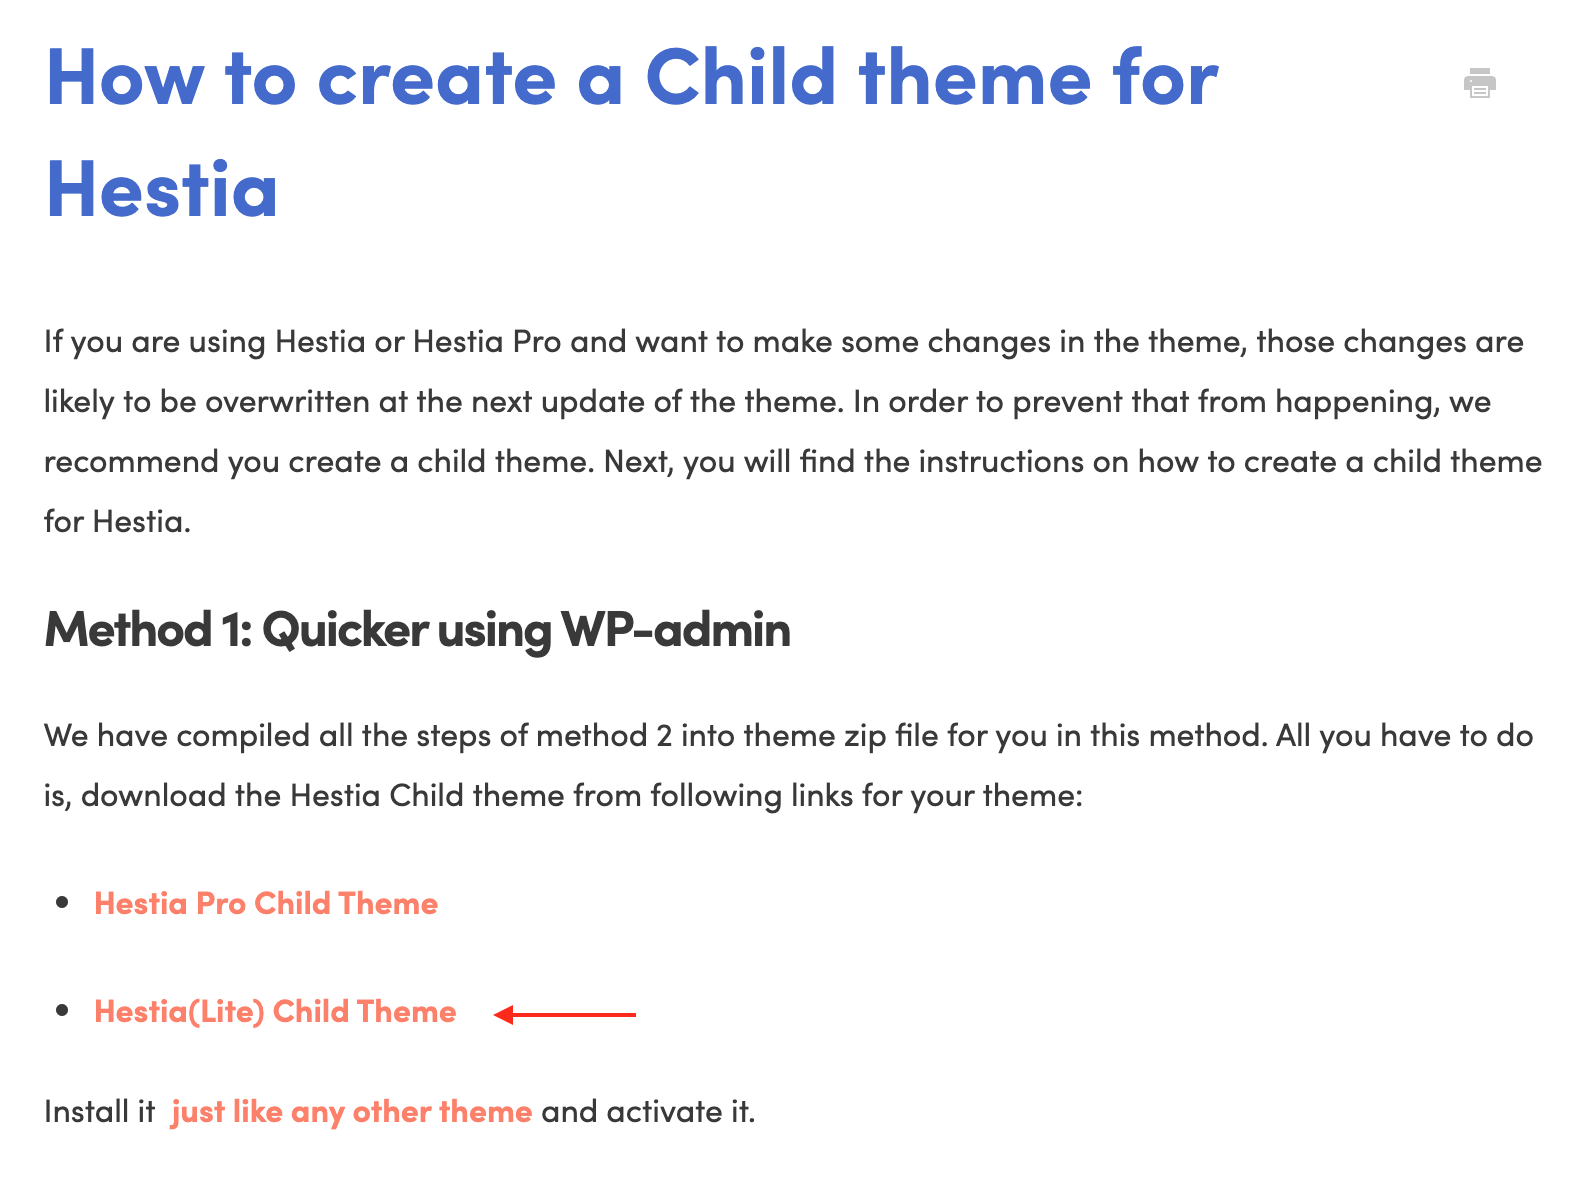 Hestia Child Theme